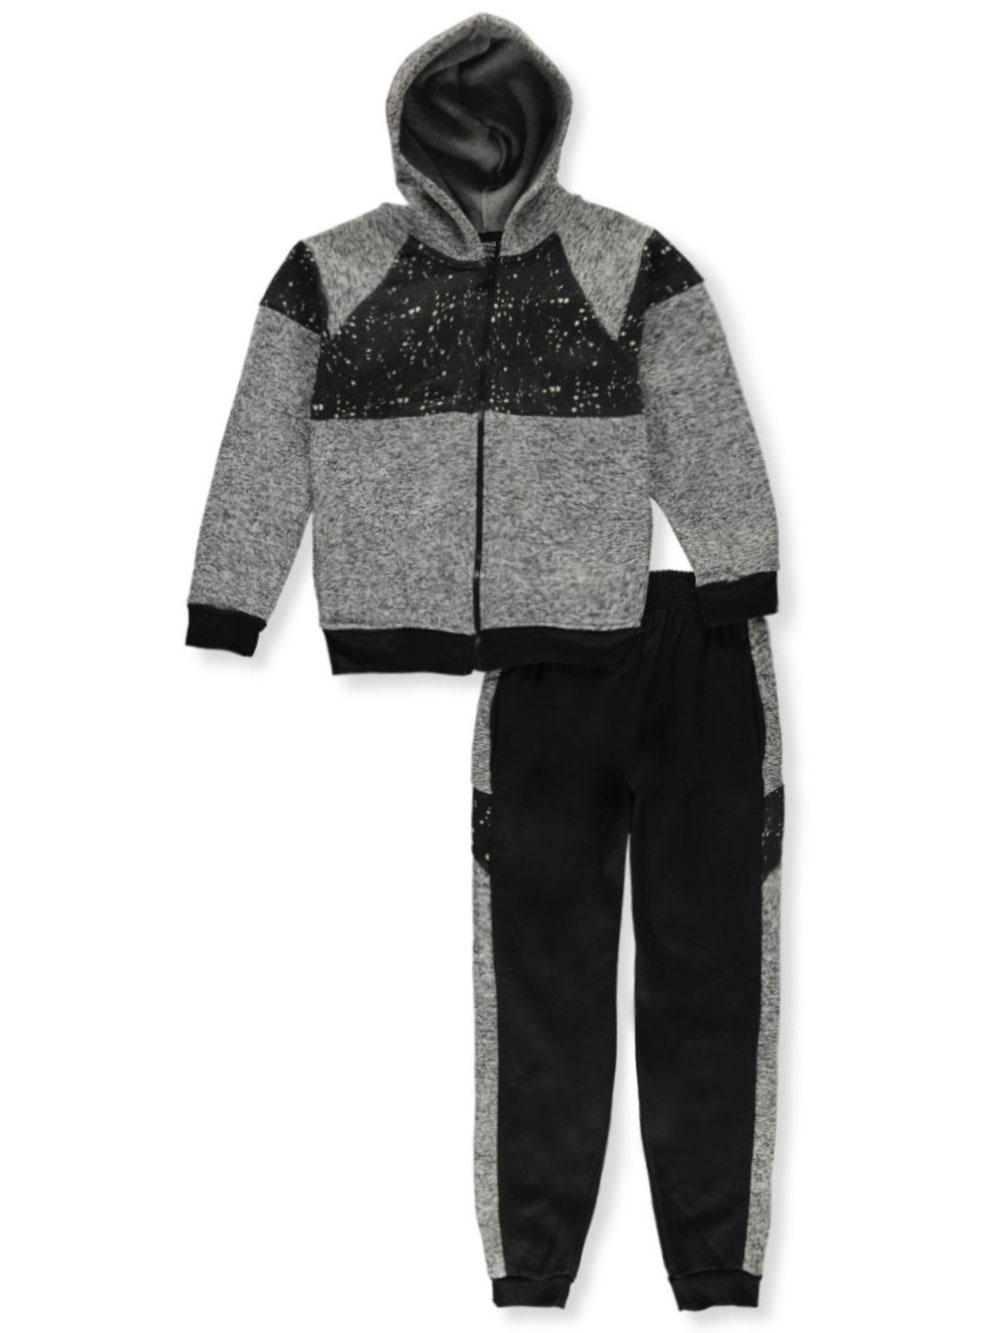 Paneled 2-Piece Sweatsuit Outfit